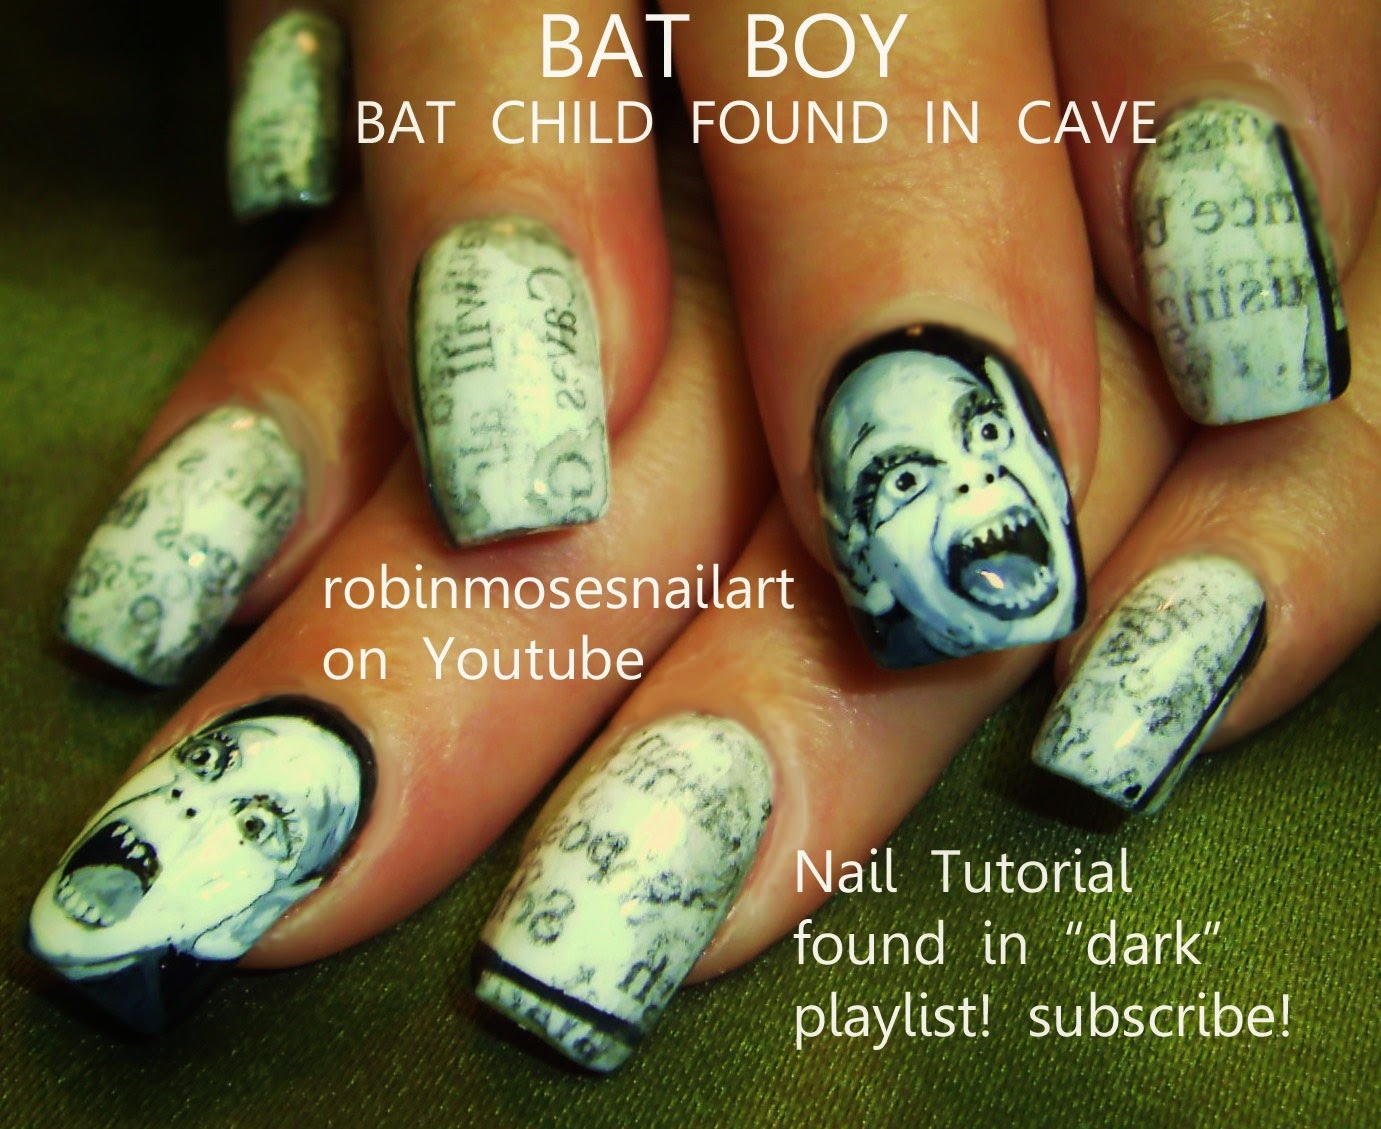 Nail art by robin moses halloween nails halloween nail art halloween nails halloween nail art easy halloween nails diy halloween nails diy halloween ideas halloween nail gallery solutioingenieria Gallery